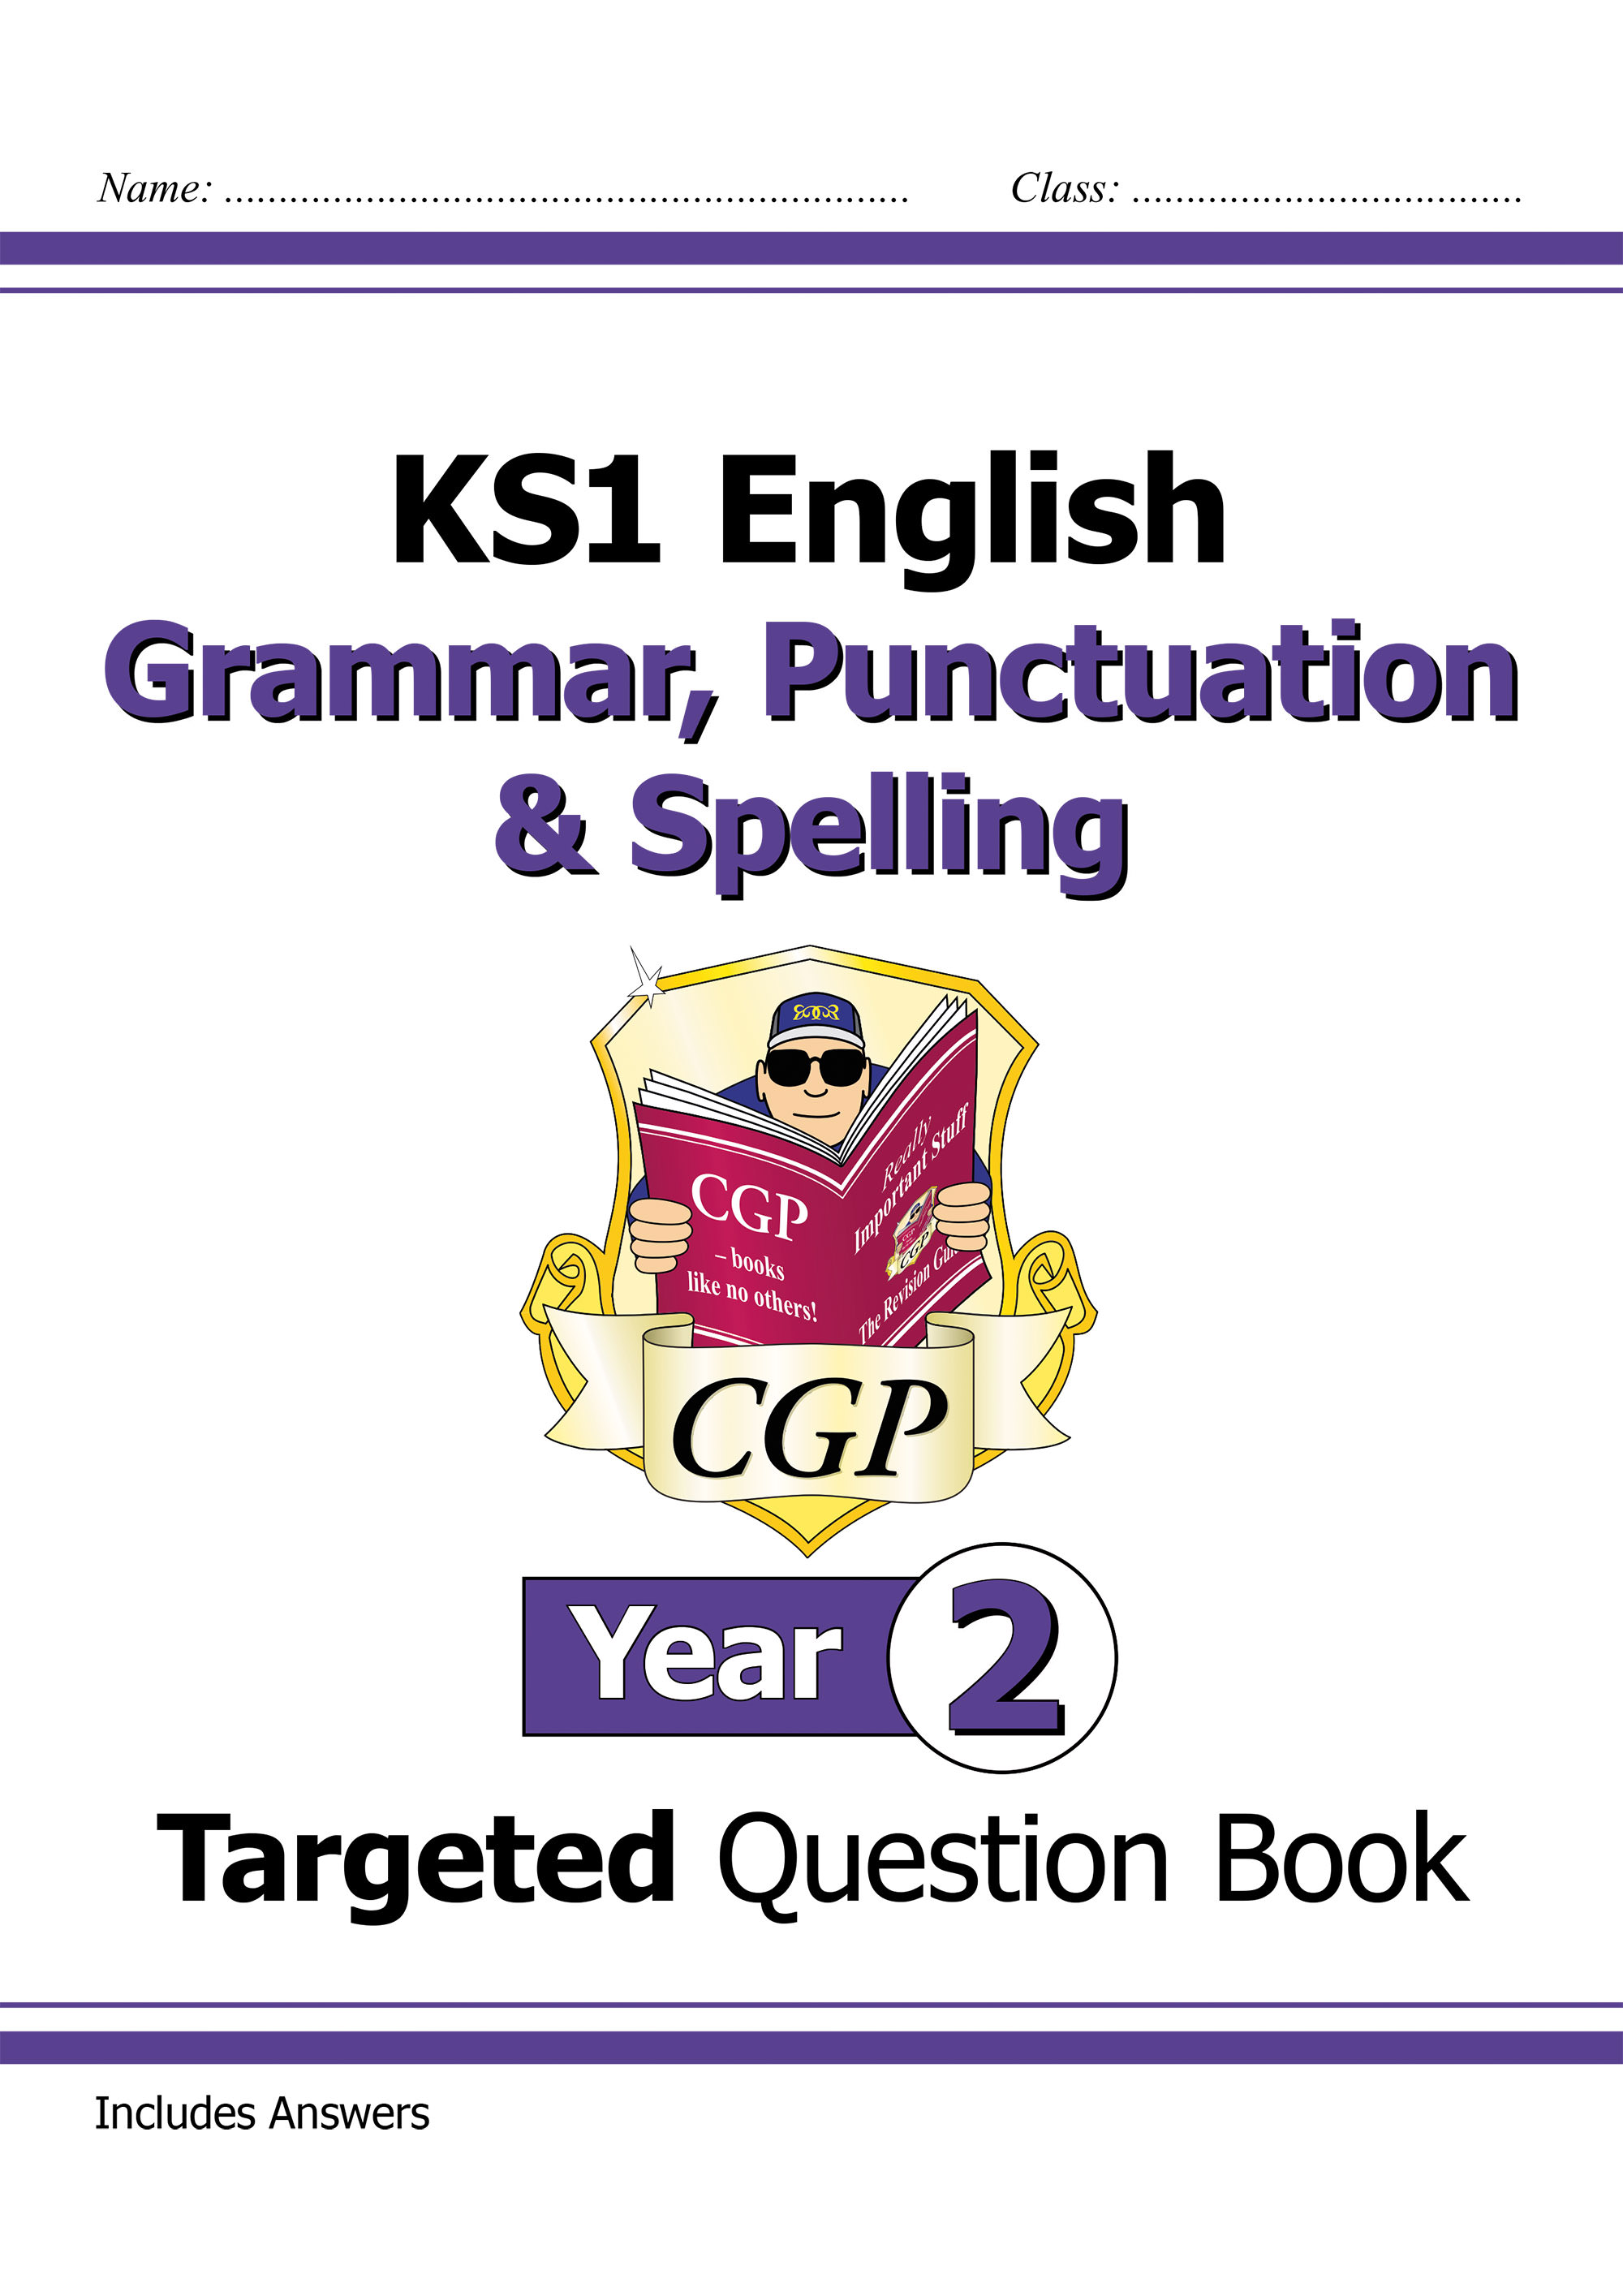 E2W11D - KS1 English Targeted Question Book: Grammar, Punctuation & Spelling - Year 2 Online Edition